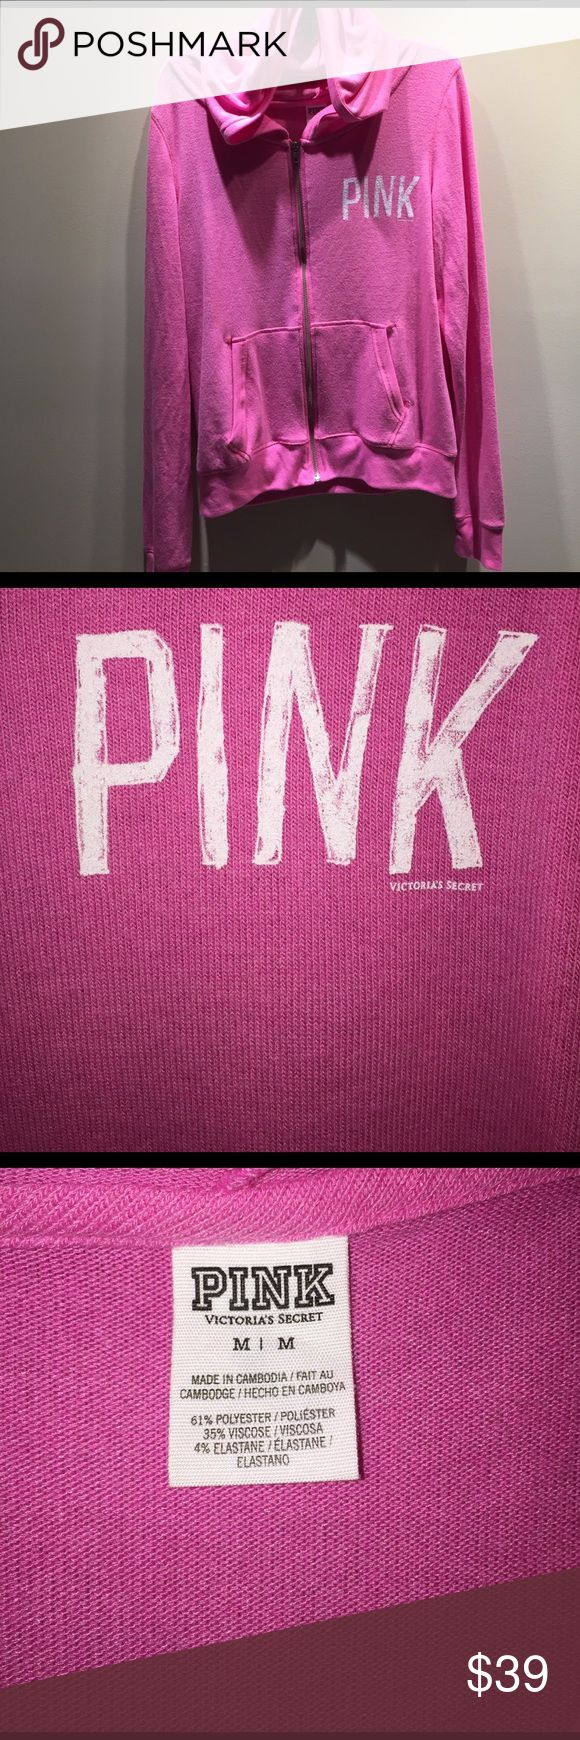 New in package size Medium VS PINK zip up hoodie New in package size Medium VS PINK zip up hoodie. Comes from a smoke free home and ships in one business day, thank you!!! PINK Victoria's Secret Tops Sweatshirts & Hoodies